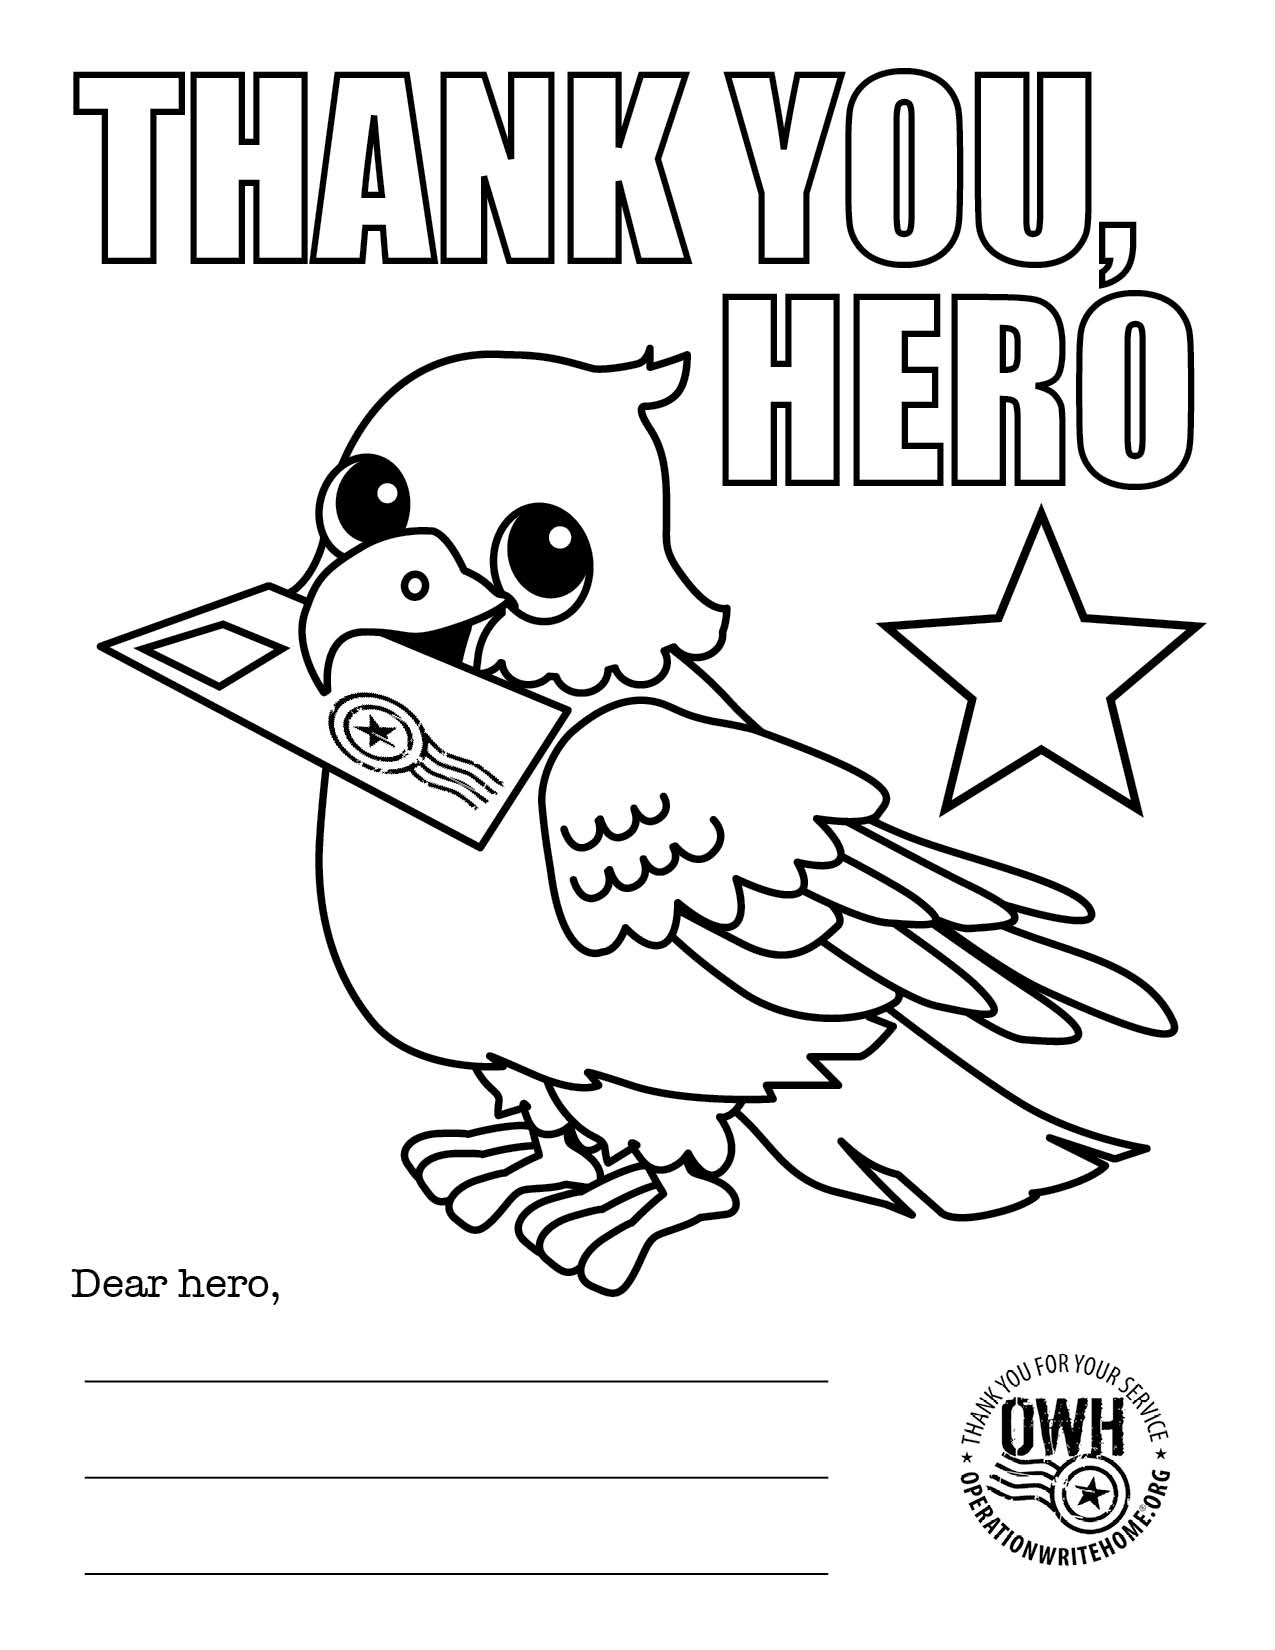 veterans day coloring page veteran39s day coloring pages realistic coloring pages coloring page veterans day